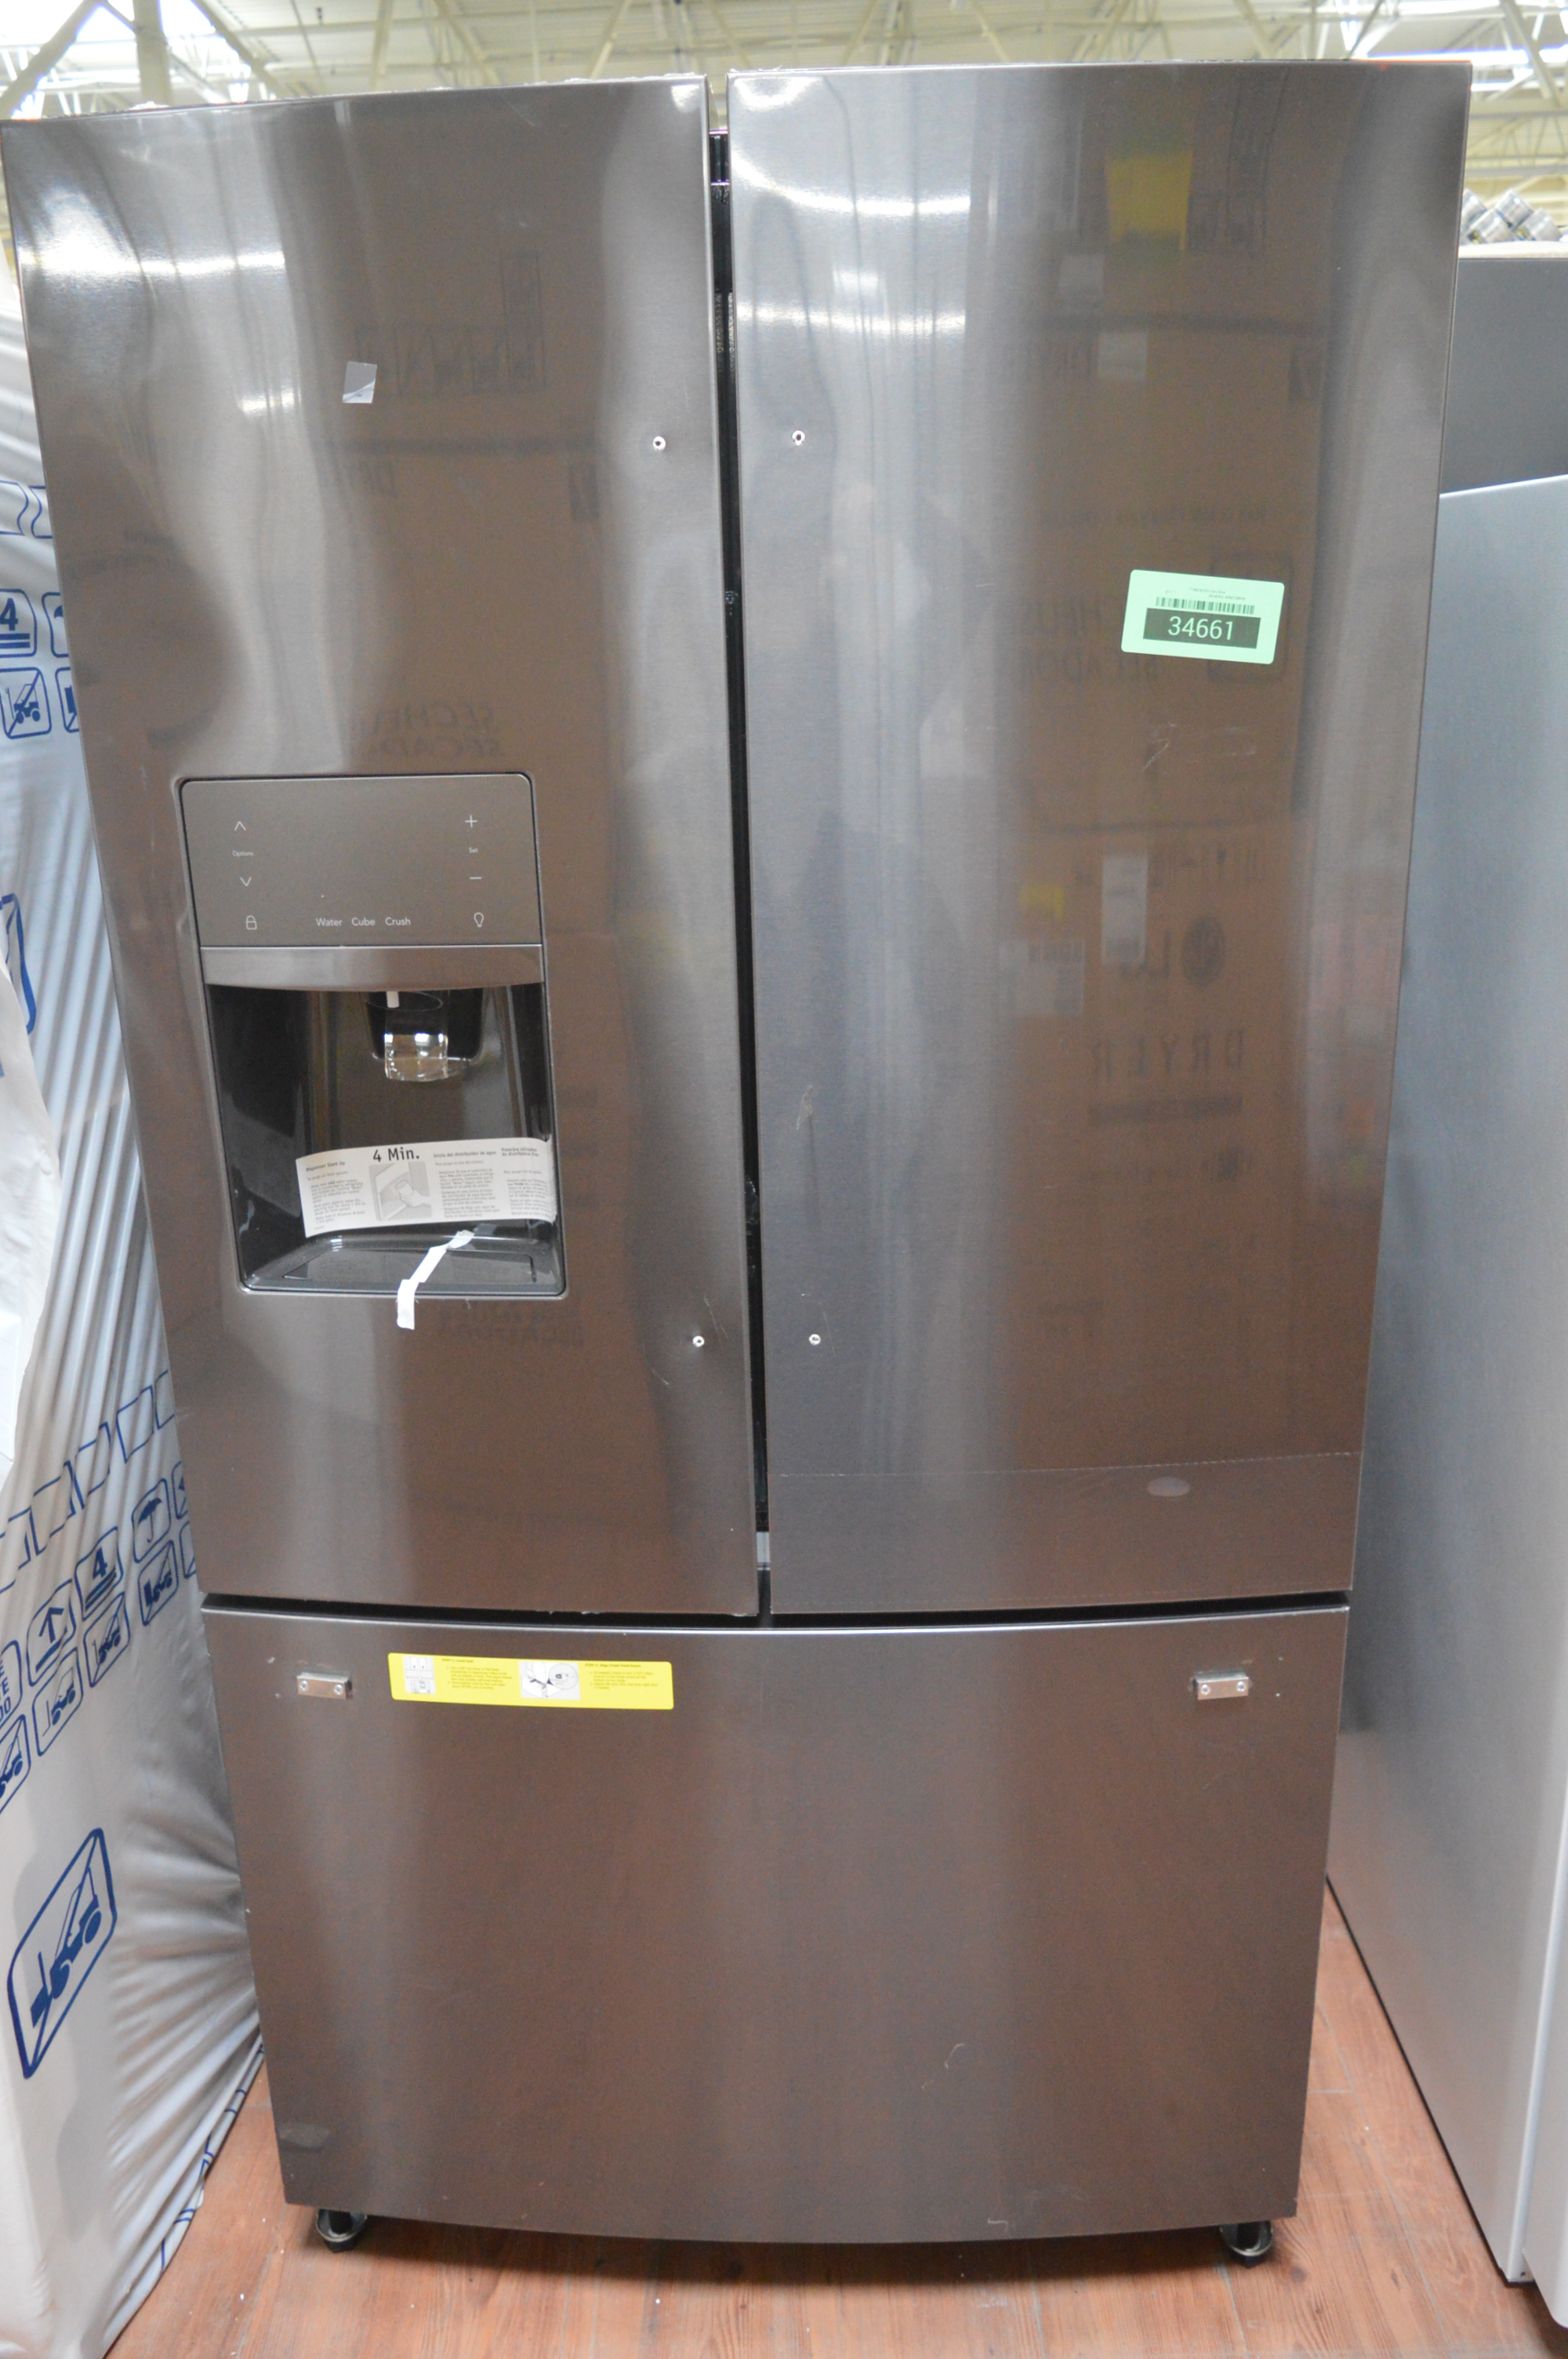 FFHB2750TD3 French Door Refrigerator Black Stainless